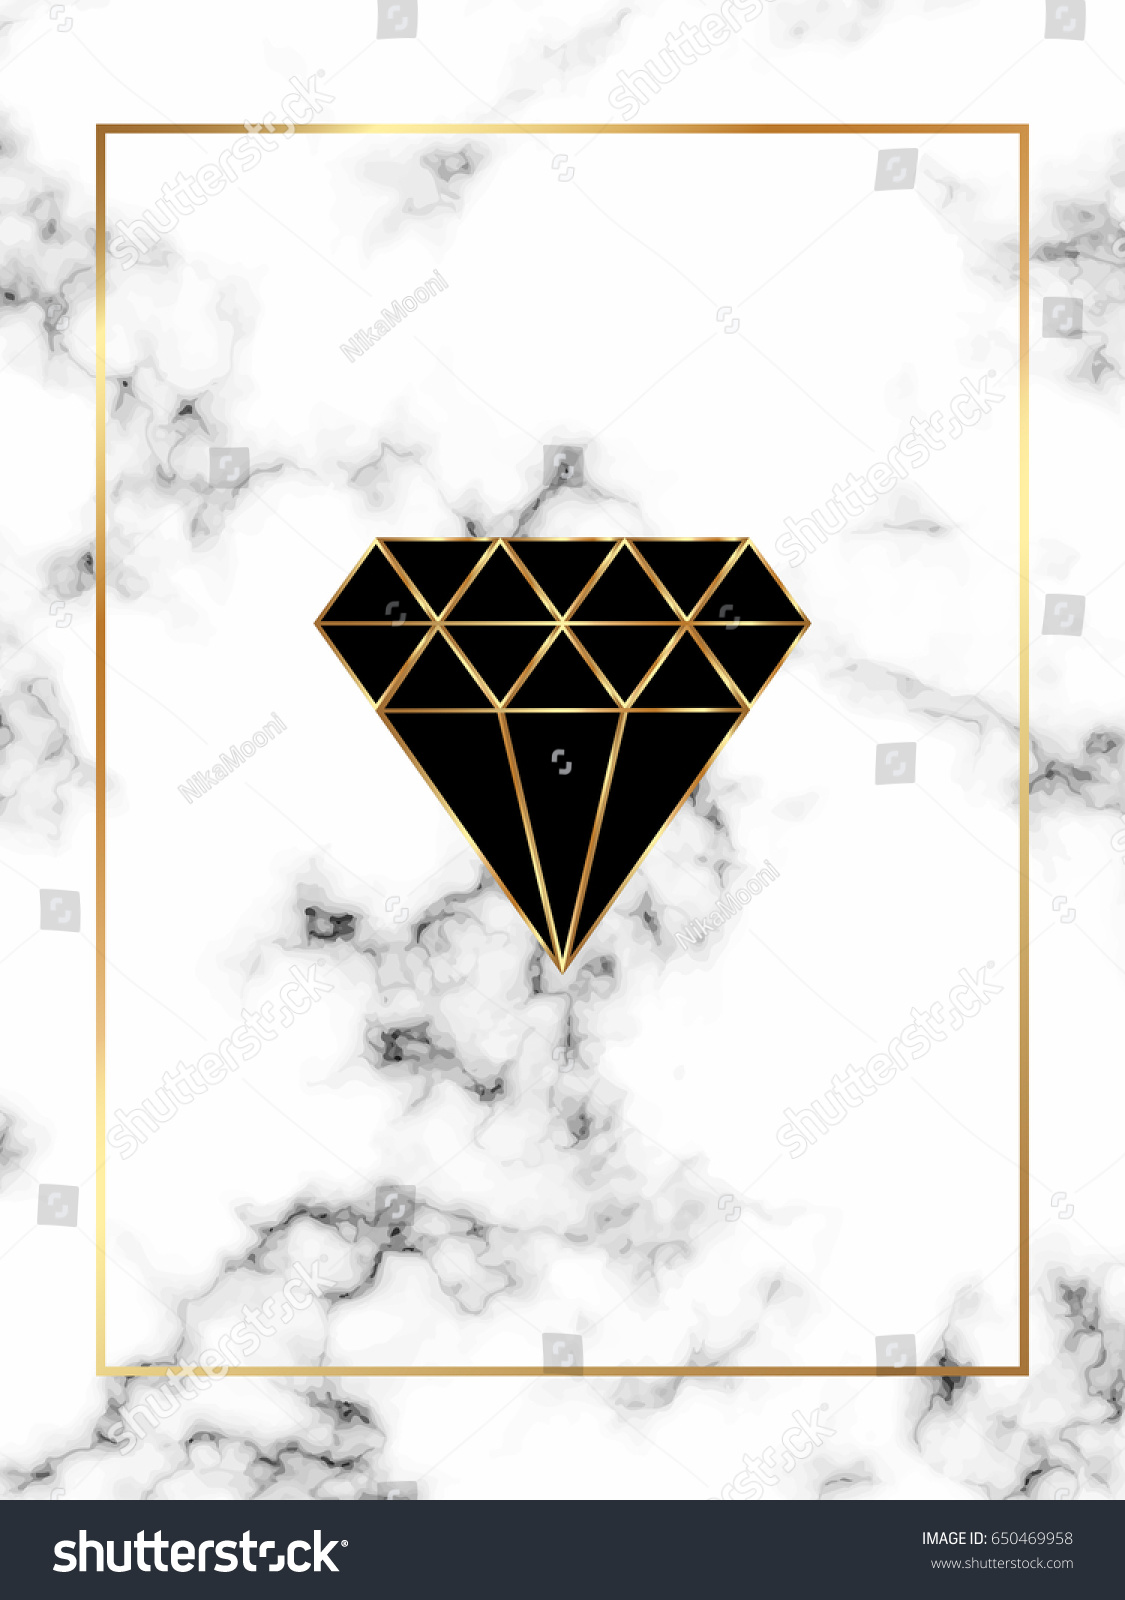 Home Decor Brochure Marble Background Gold Diamond Triangle Rhombus Stock